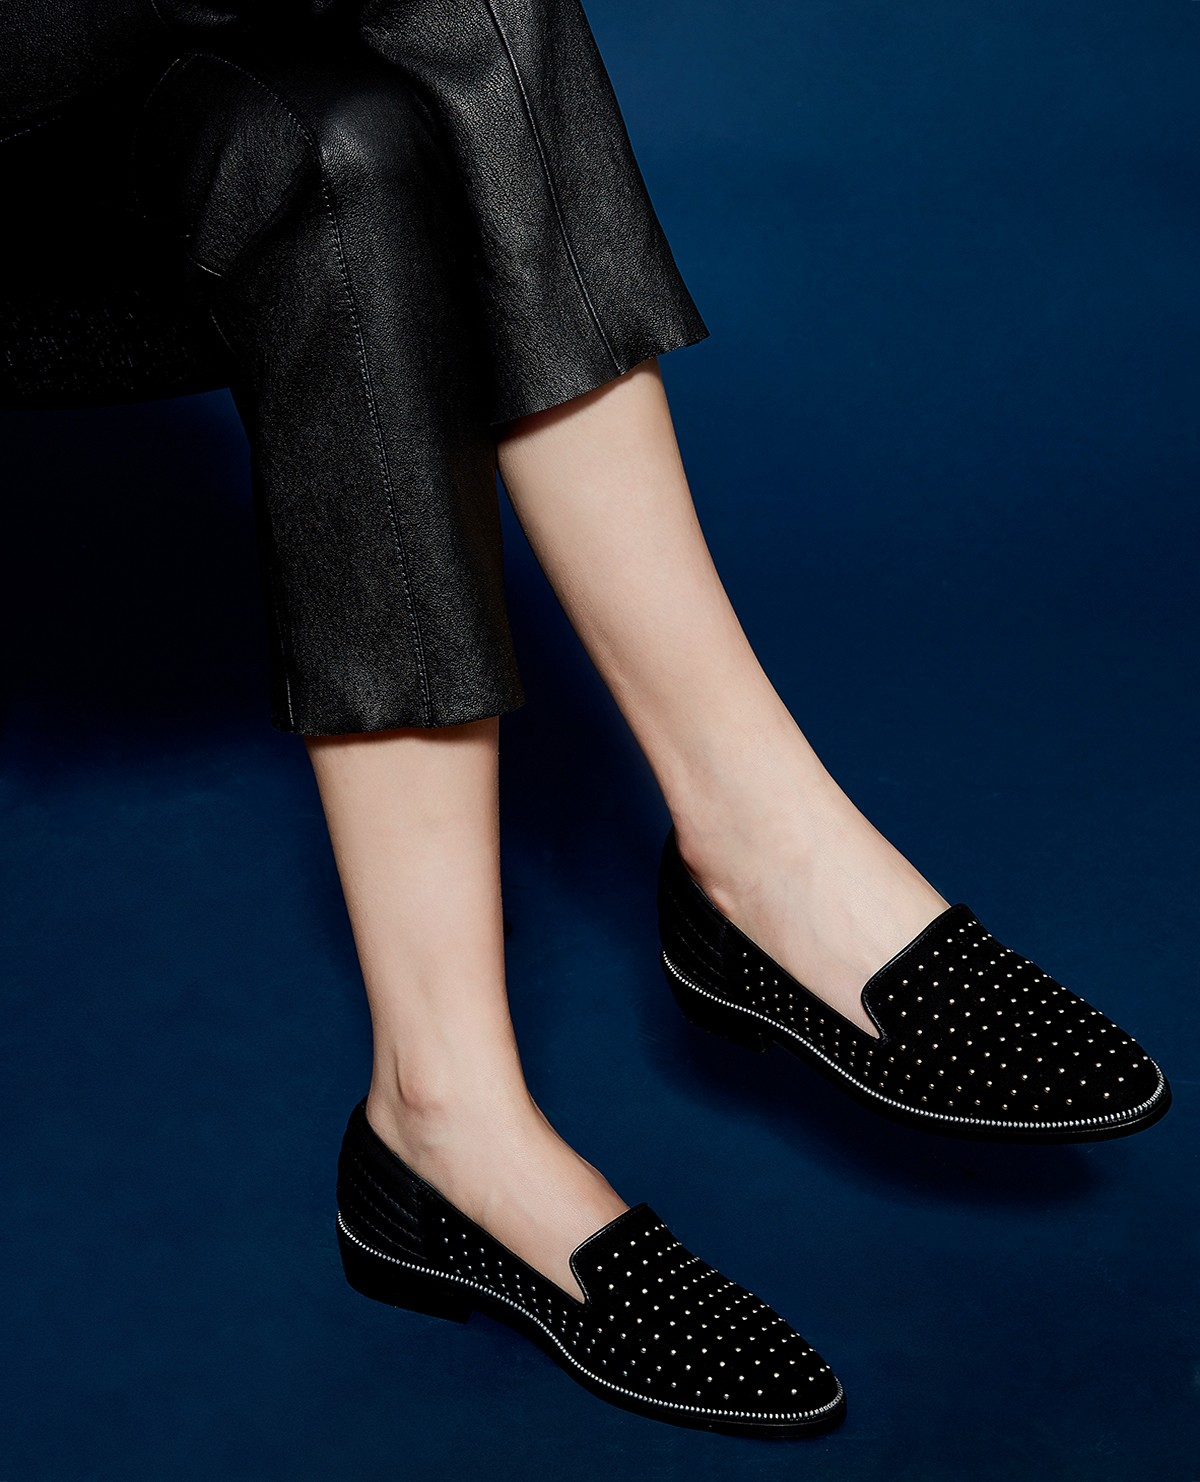 The Kooples Suede Slippers Decorated with Studs Lyih5c1I0